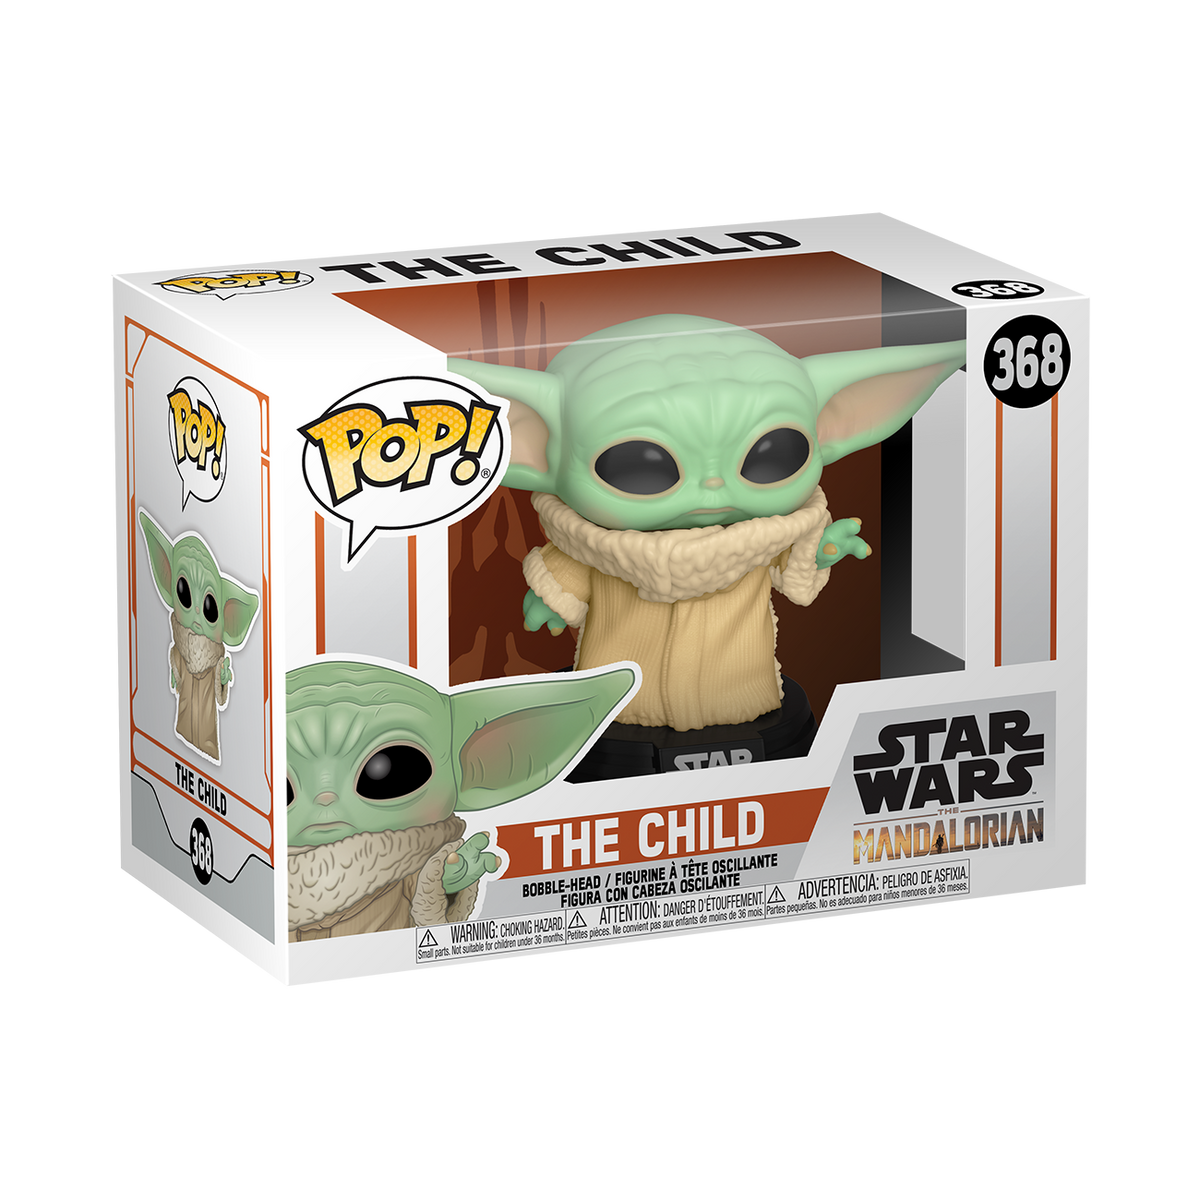 STAR WARS: THE MANDALORIAN THE CHILD POP! VINYL FIGURE - BABY YODA